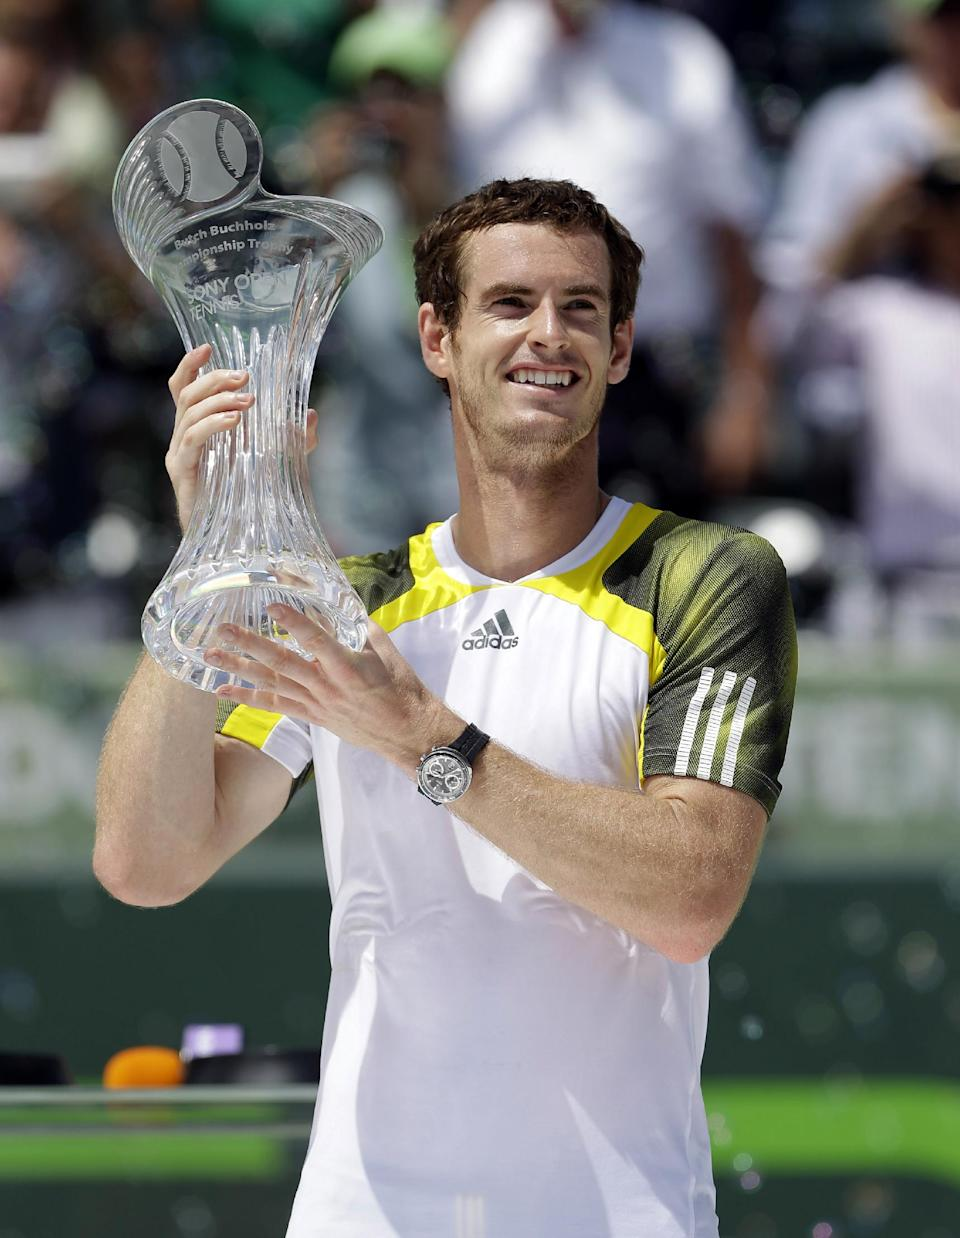 Andy Murray of Britain holds up his trophy after defeating David Ferrer of Spain, 2-6, 6-4, 7-6 (1) in the final match of the Sony Open tennis tournament, Sunday, March 31, 2013 in Key Biscayne. (AP Photo/Wilfredo Lee)